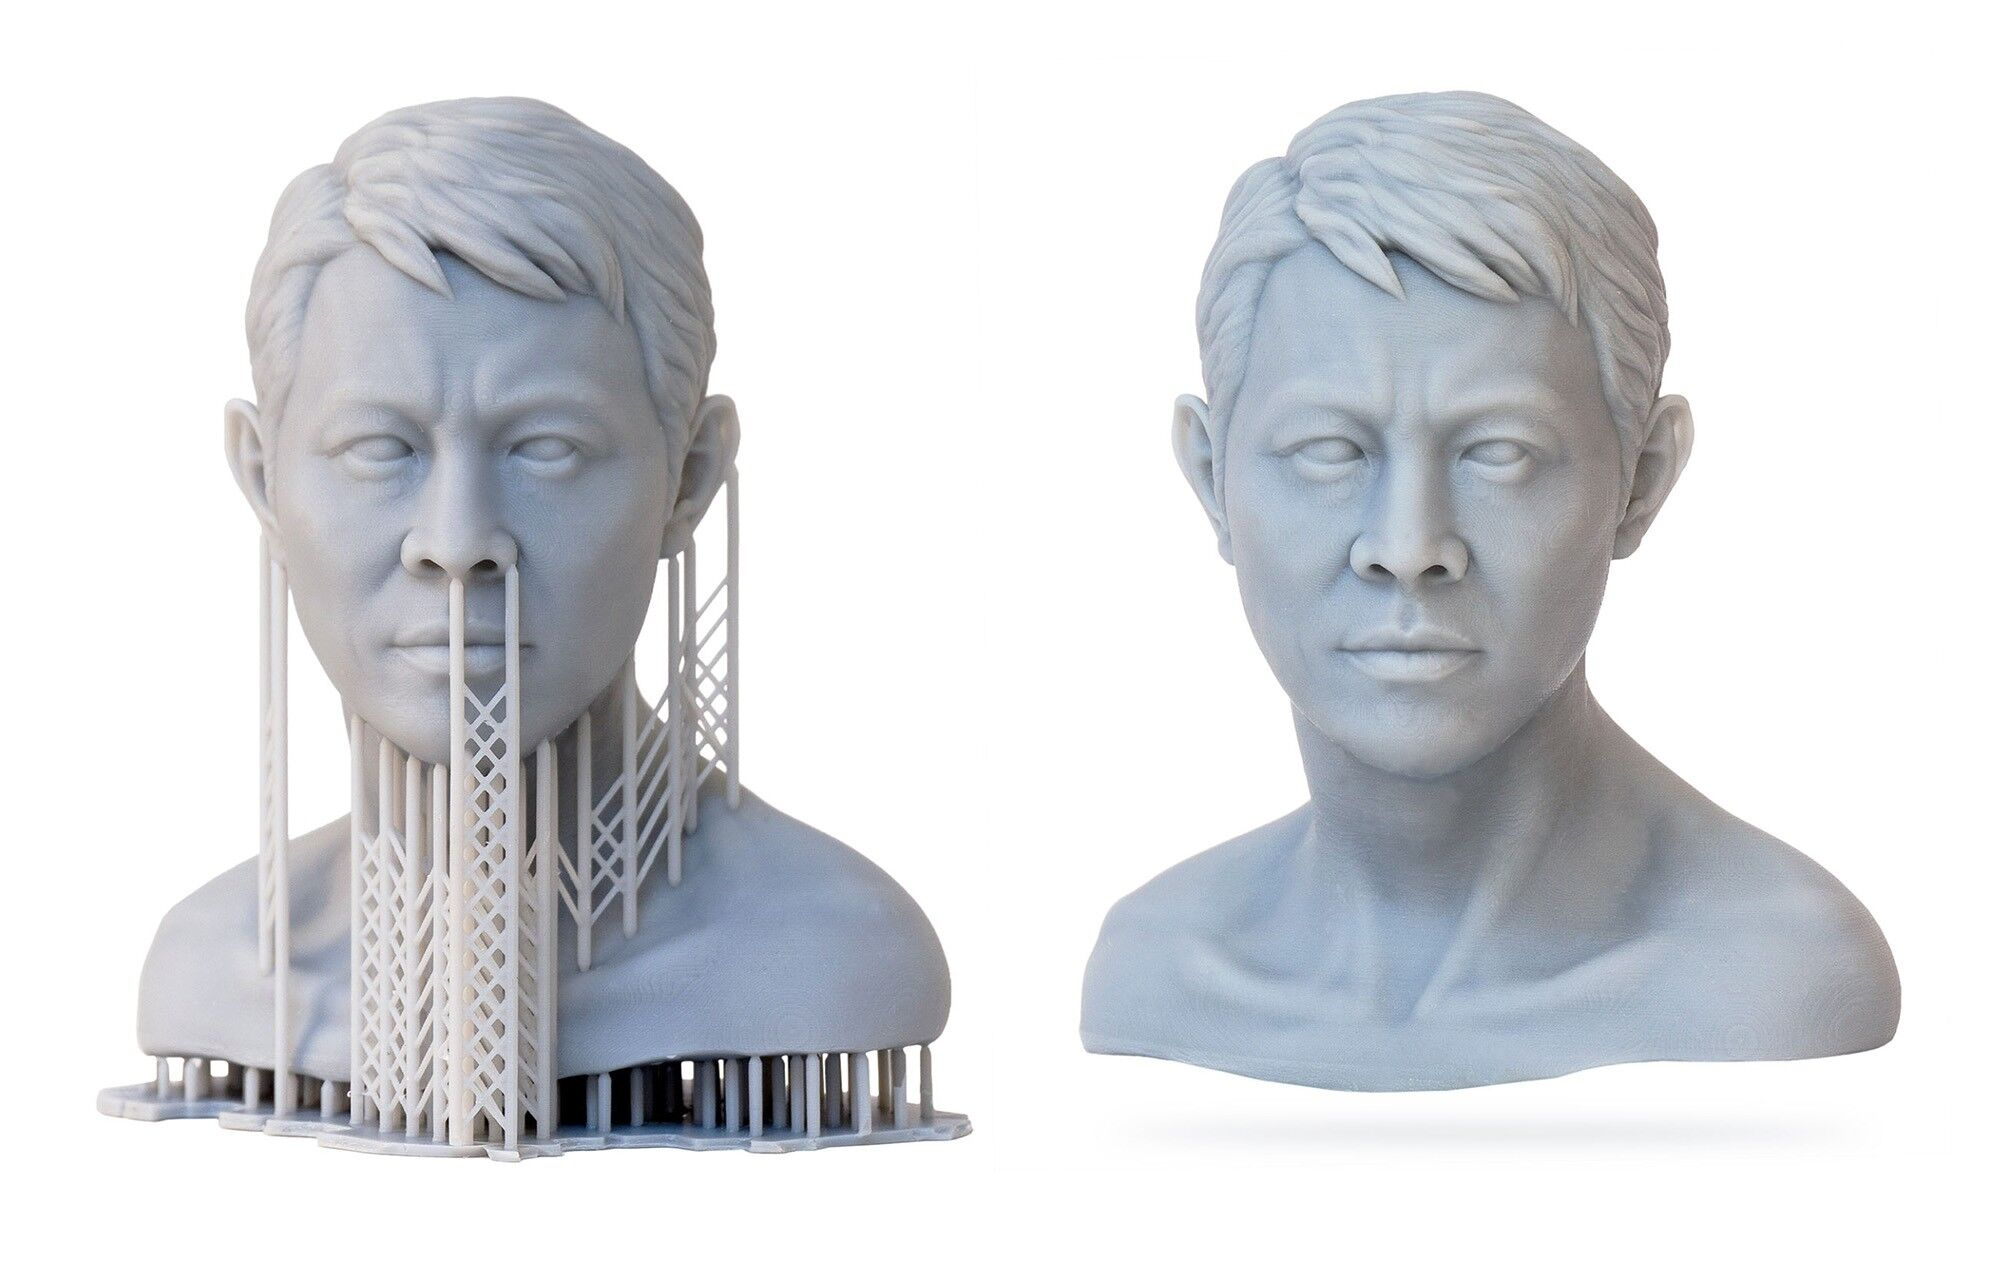 A bust printed on the MoonRay 3D printer in super-fine resolution